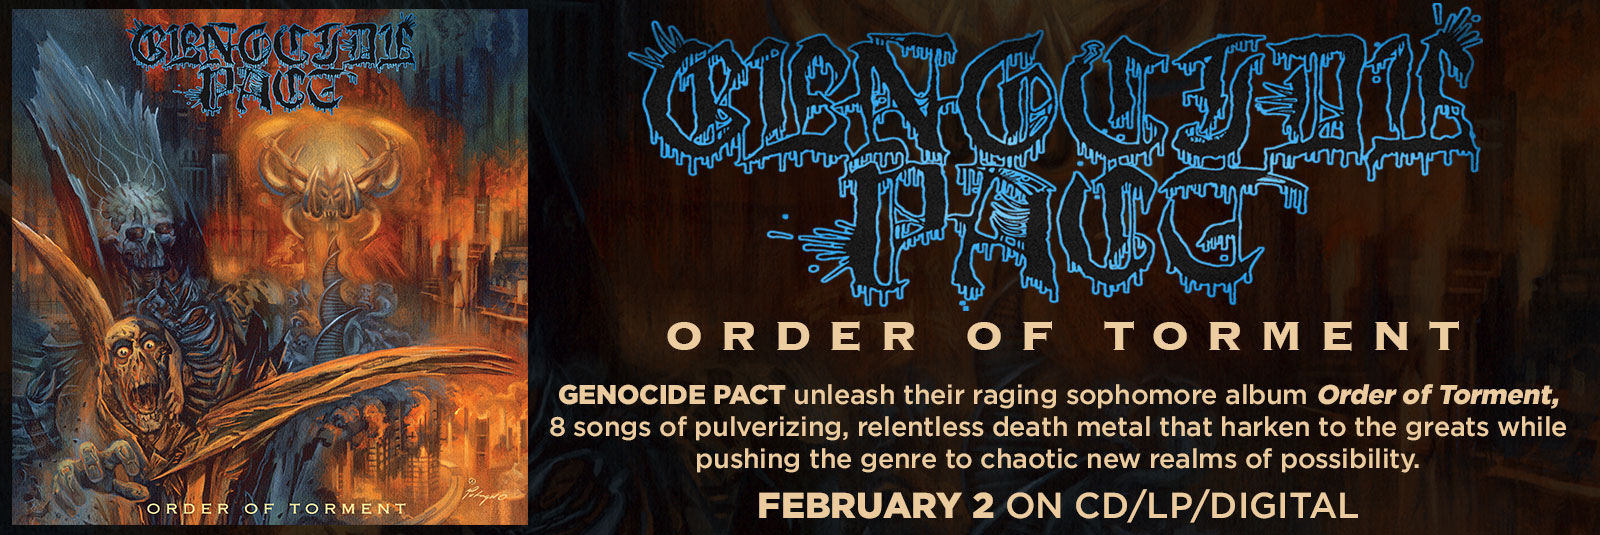 genocide-pact-order-of-torment